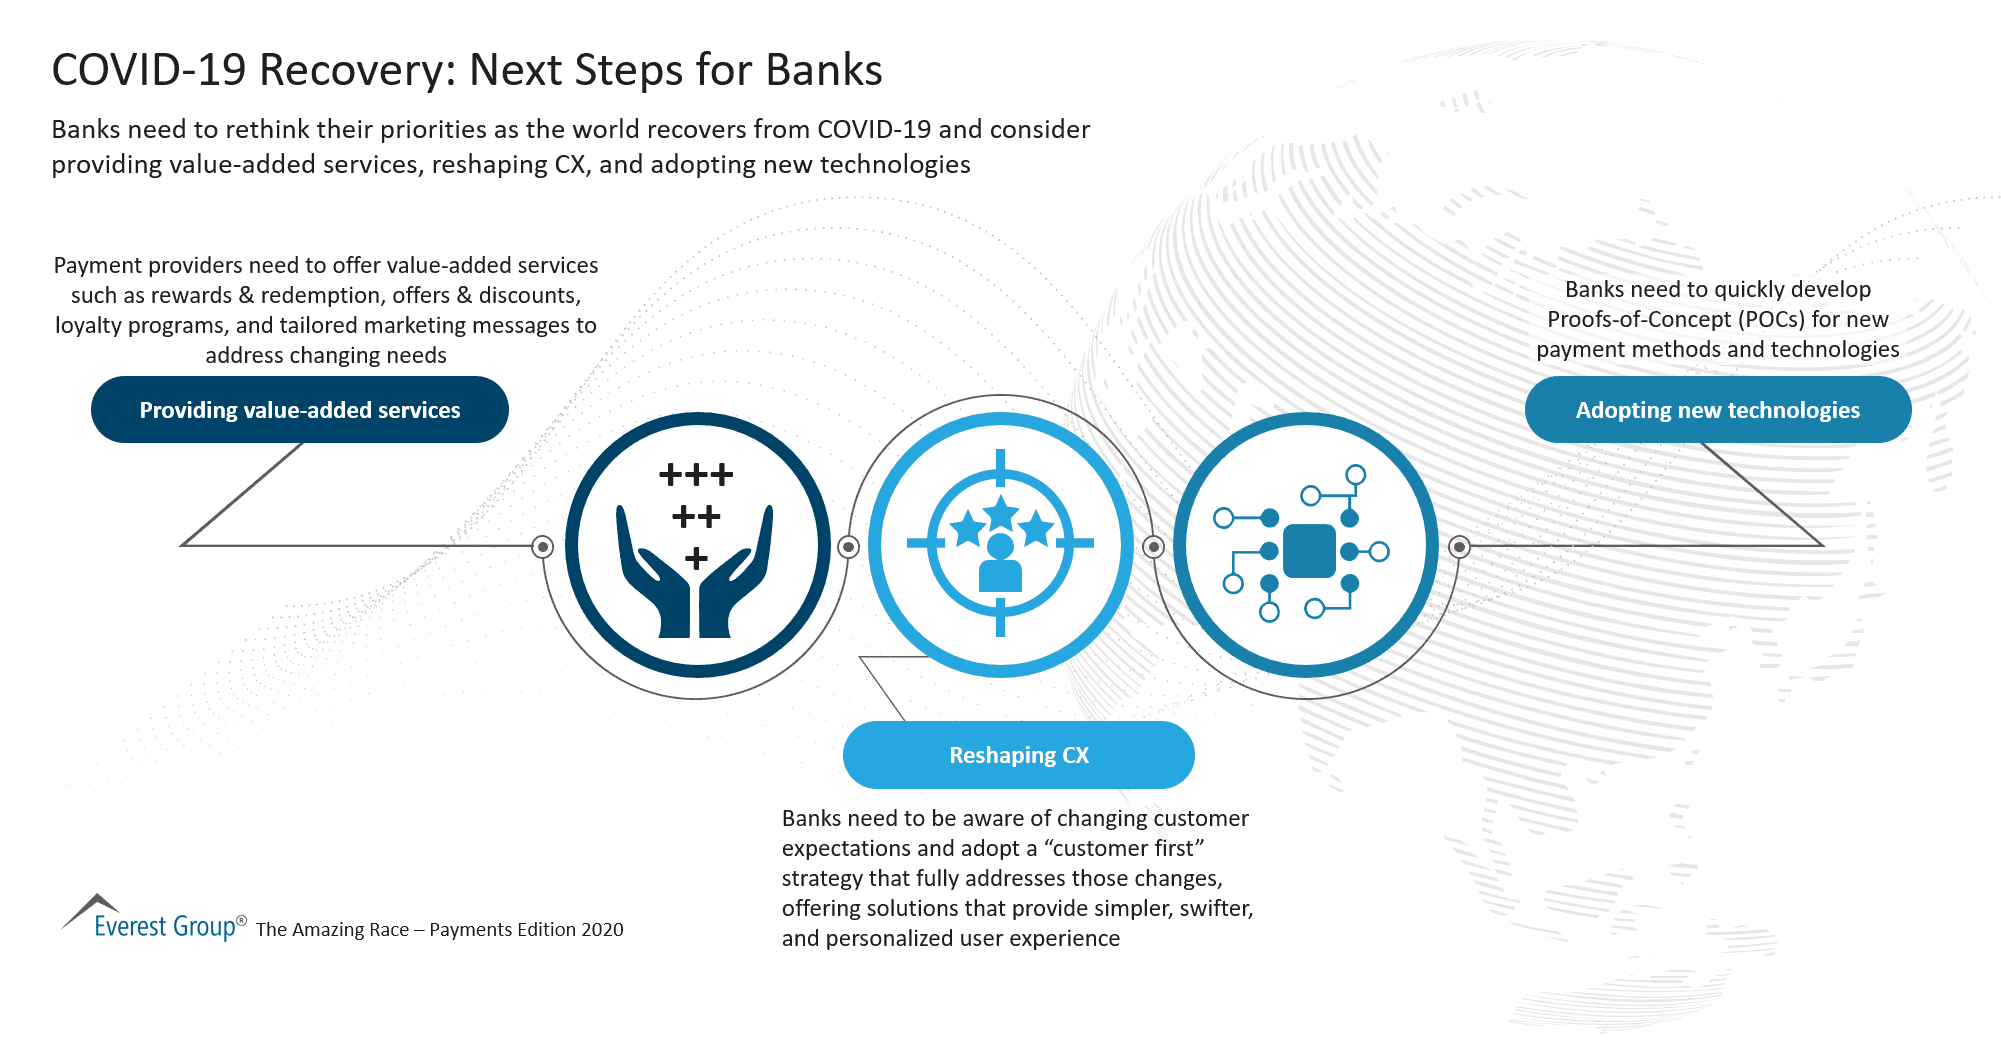 COVID-19 Recovery - Next Steps for Banks